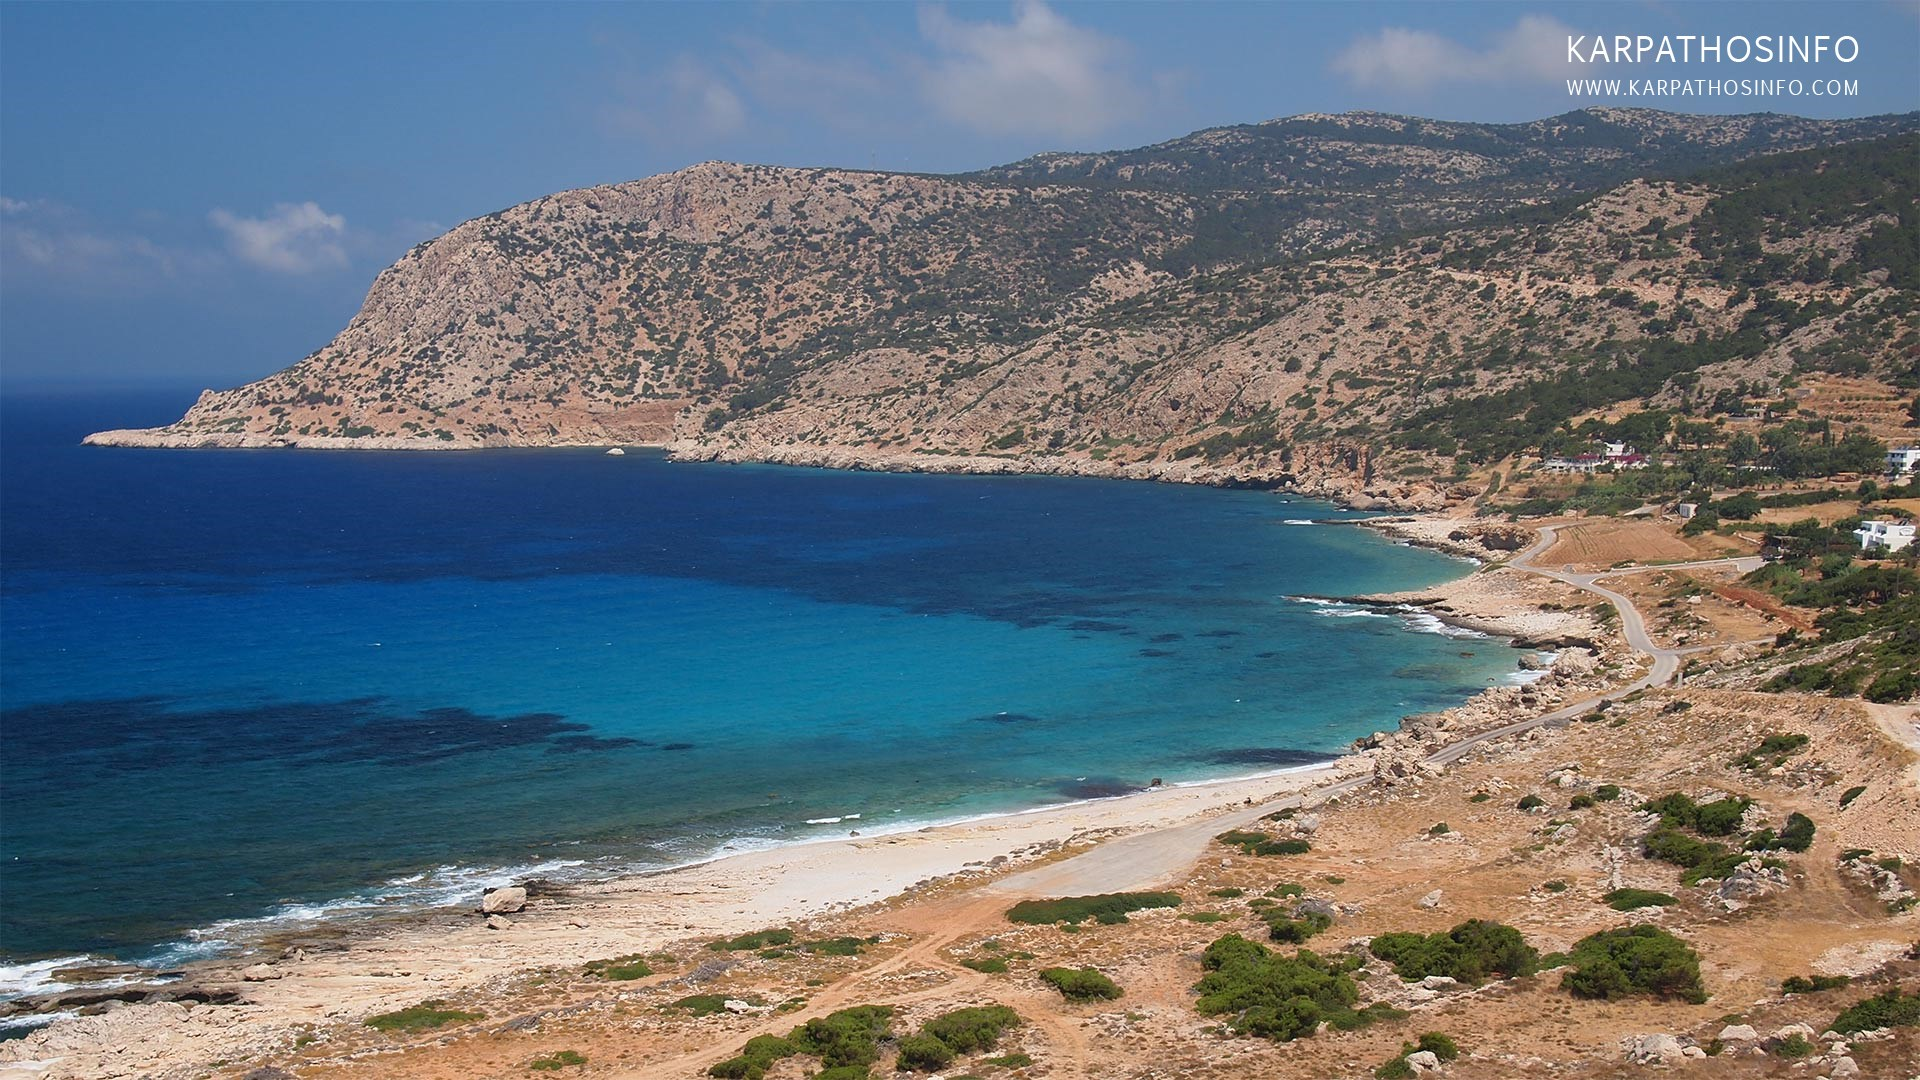 images/slider/adia-beach-karpathos-slider.jpg